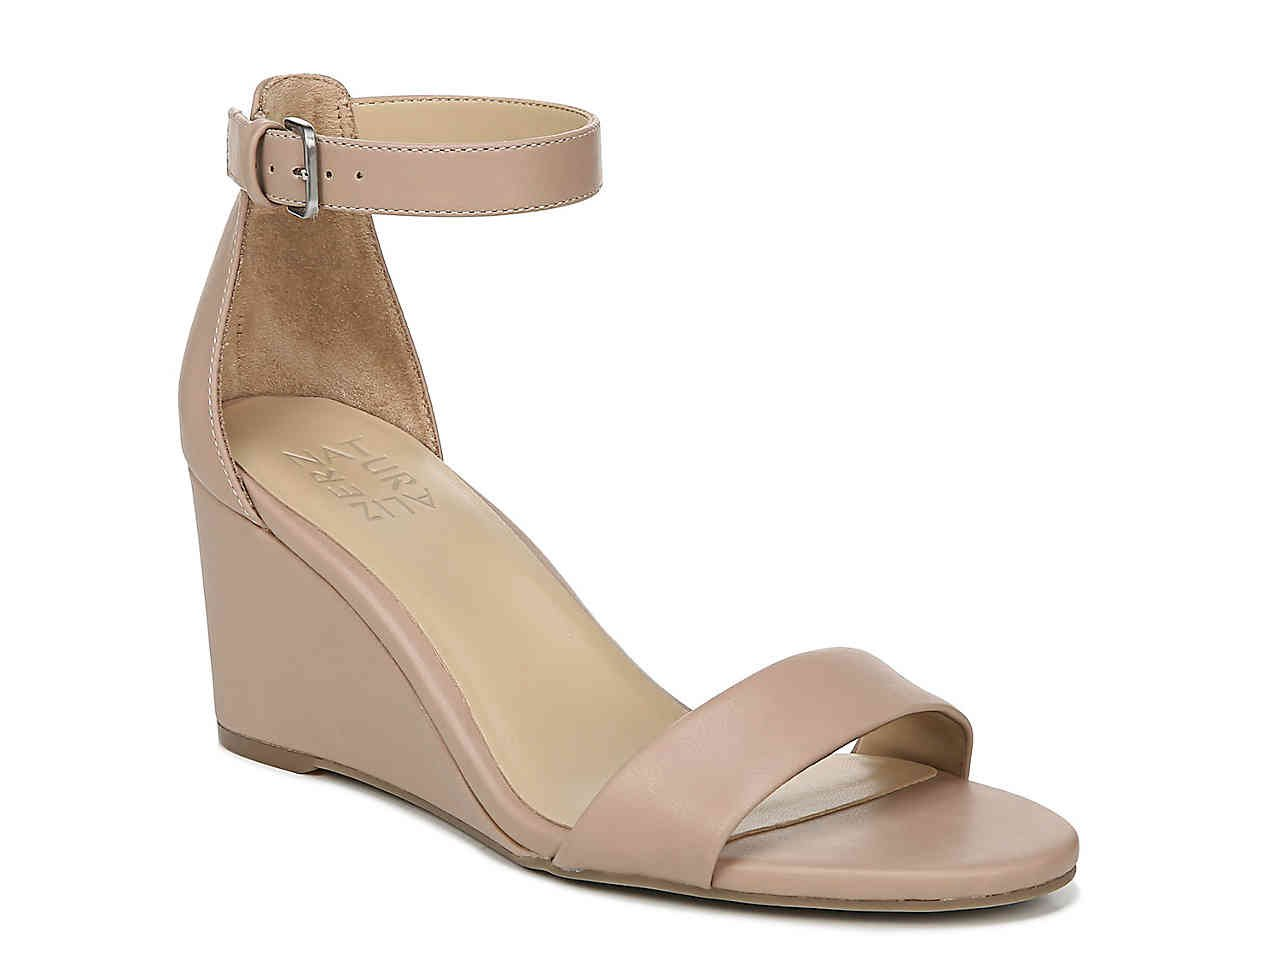 Naturalizer Leonora Wedge Sandal Women's Shoes | DSW